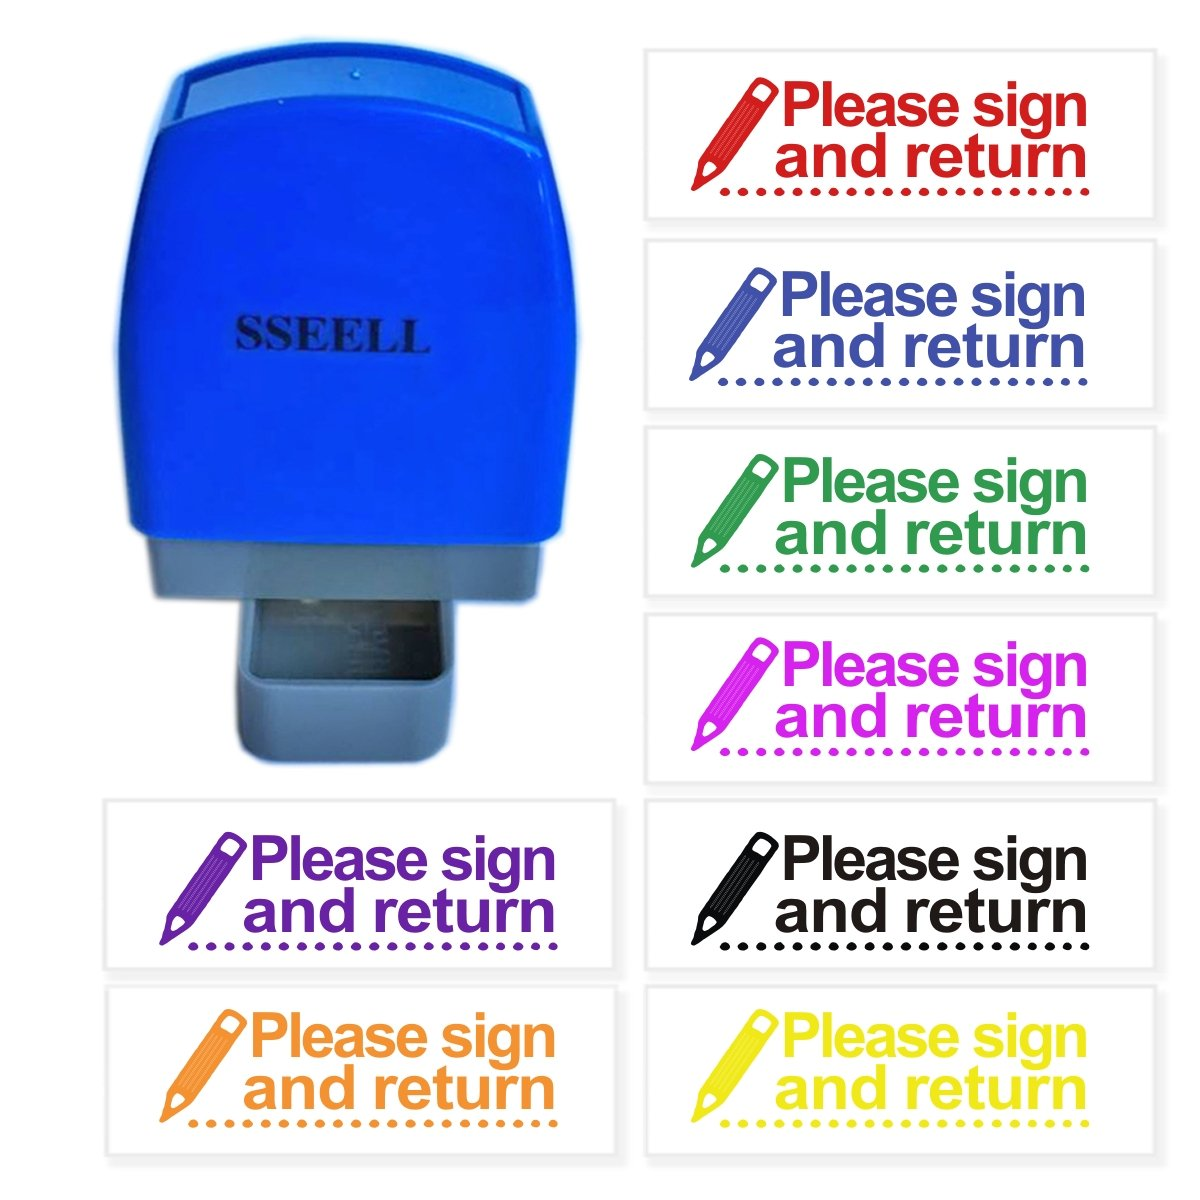 SSEELL Please Sign and Return Reward Stamp Self Inking for School Student Teacher Homework Feedback Stamp Rubber Flash Stamp Self-Inking Pre-Inked RE-inkable School Stationary - Red Ink Color